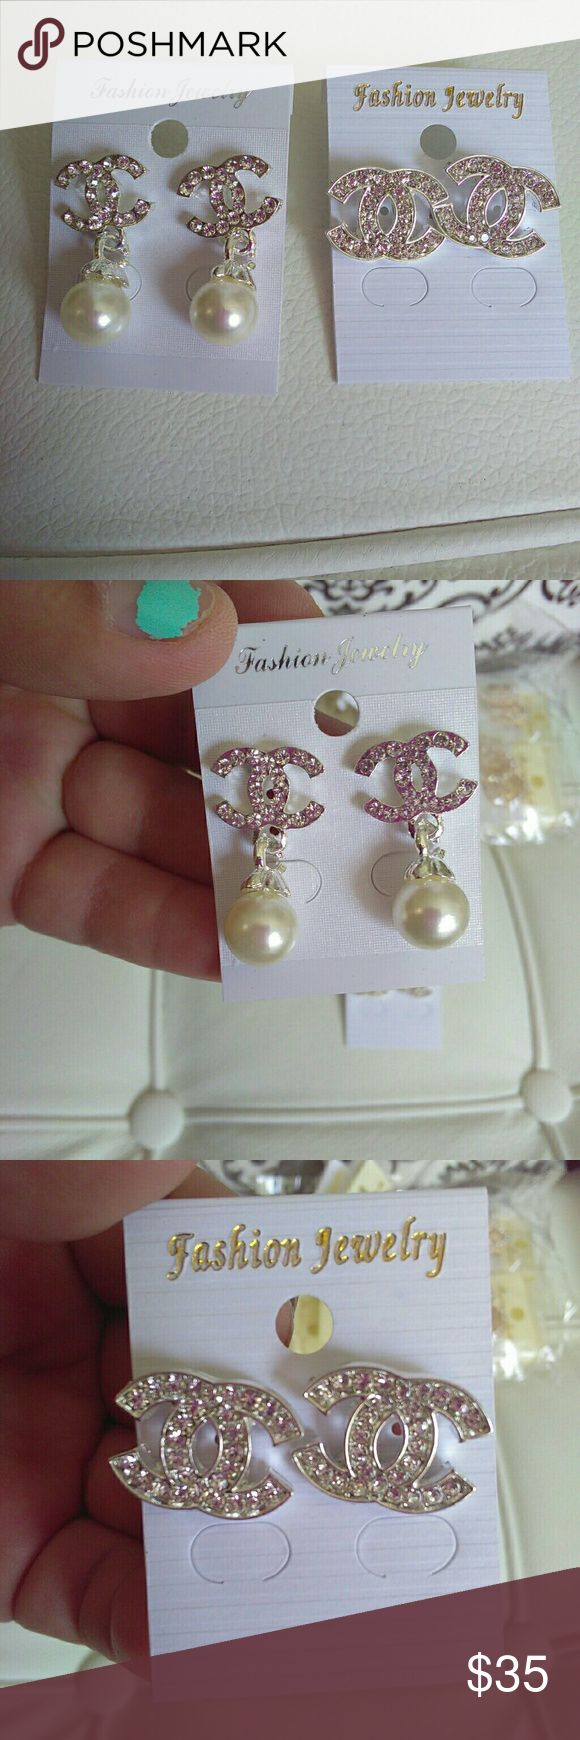 Chanel earrings New Price is for both chanel Other